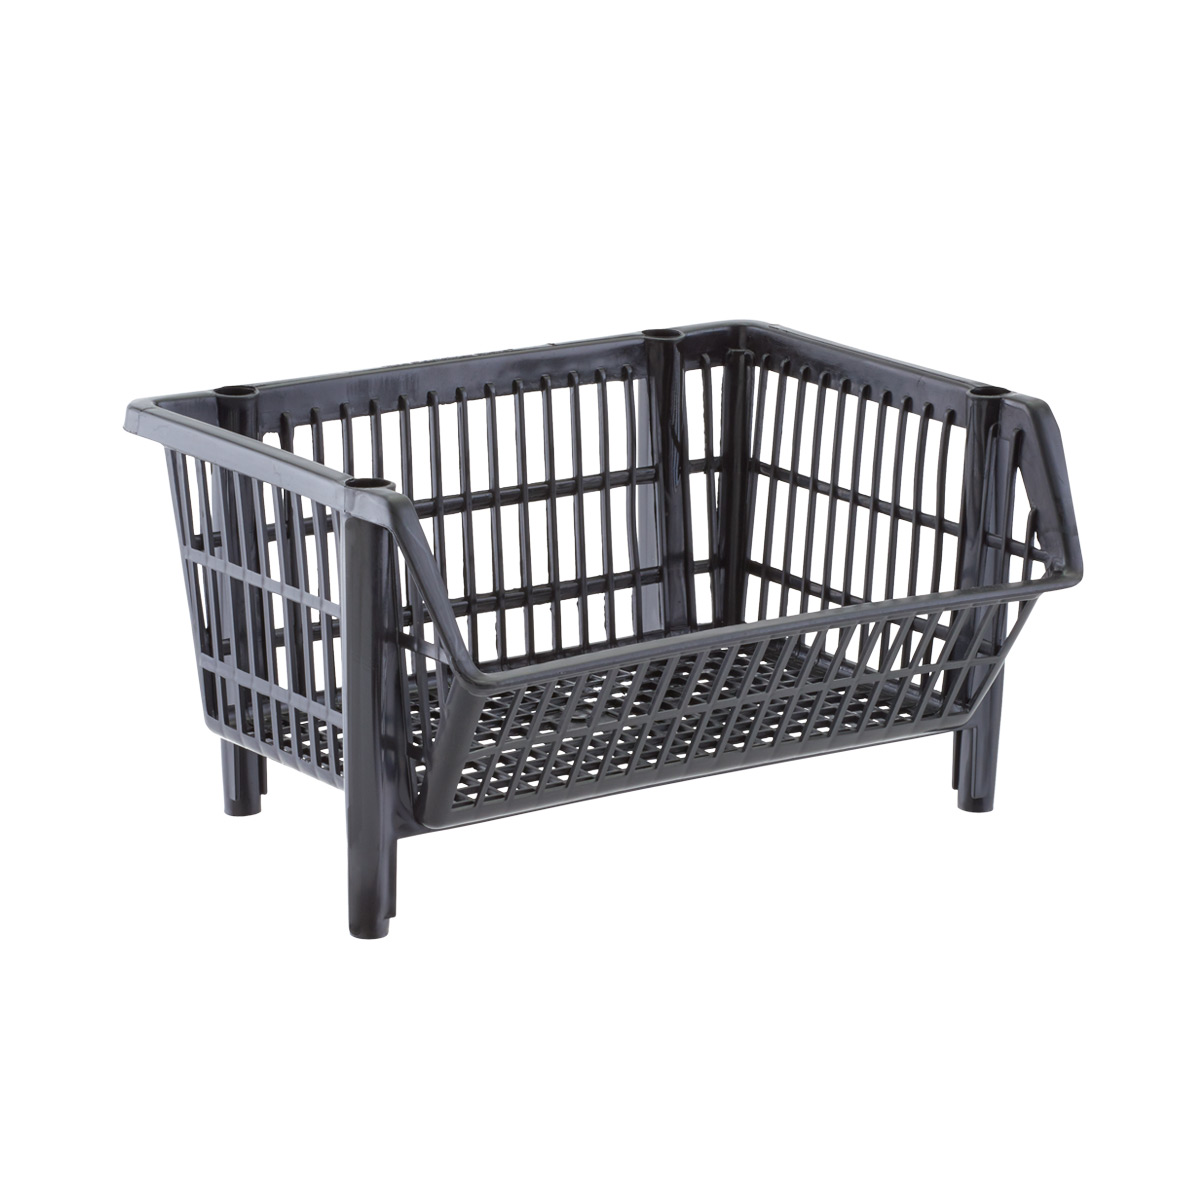 Our Basic Black Stackable Baskets